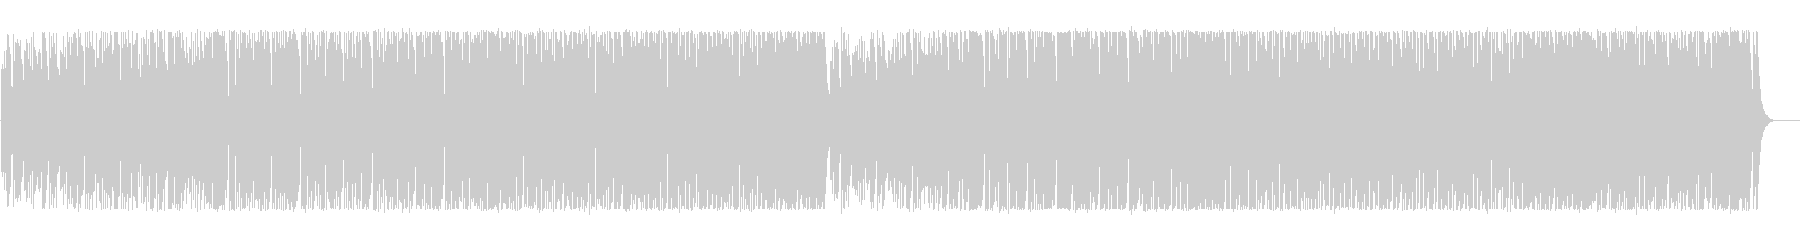 Pop and fun comical BGM's unreproduced waveform